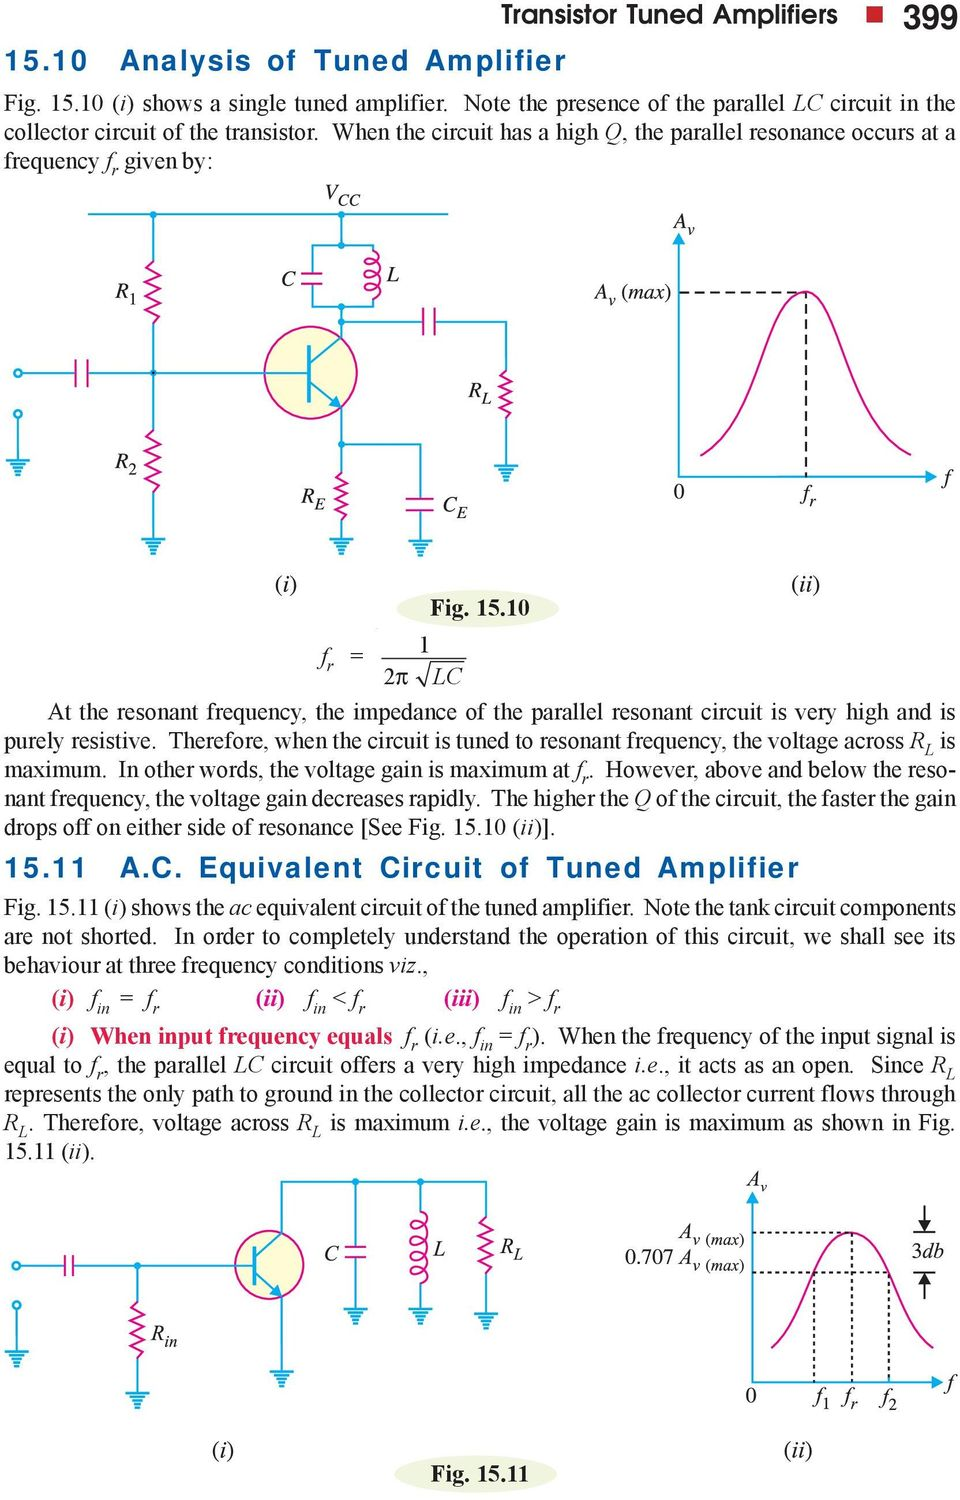 Transistor Tuned Amplifiers Pdf Impedance In A Parallel Resonance Circuit 0 F R C At The Resonant Frequency Of